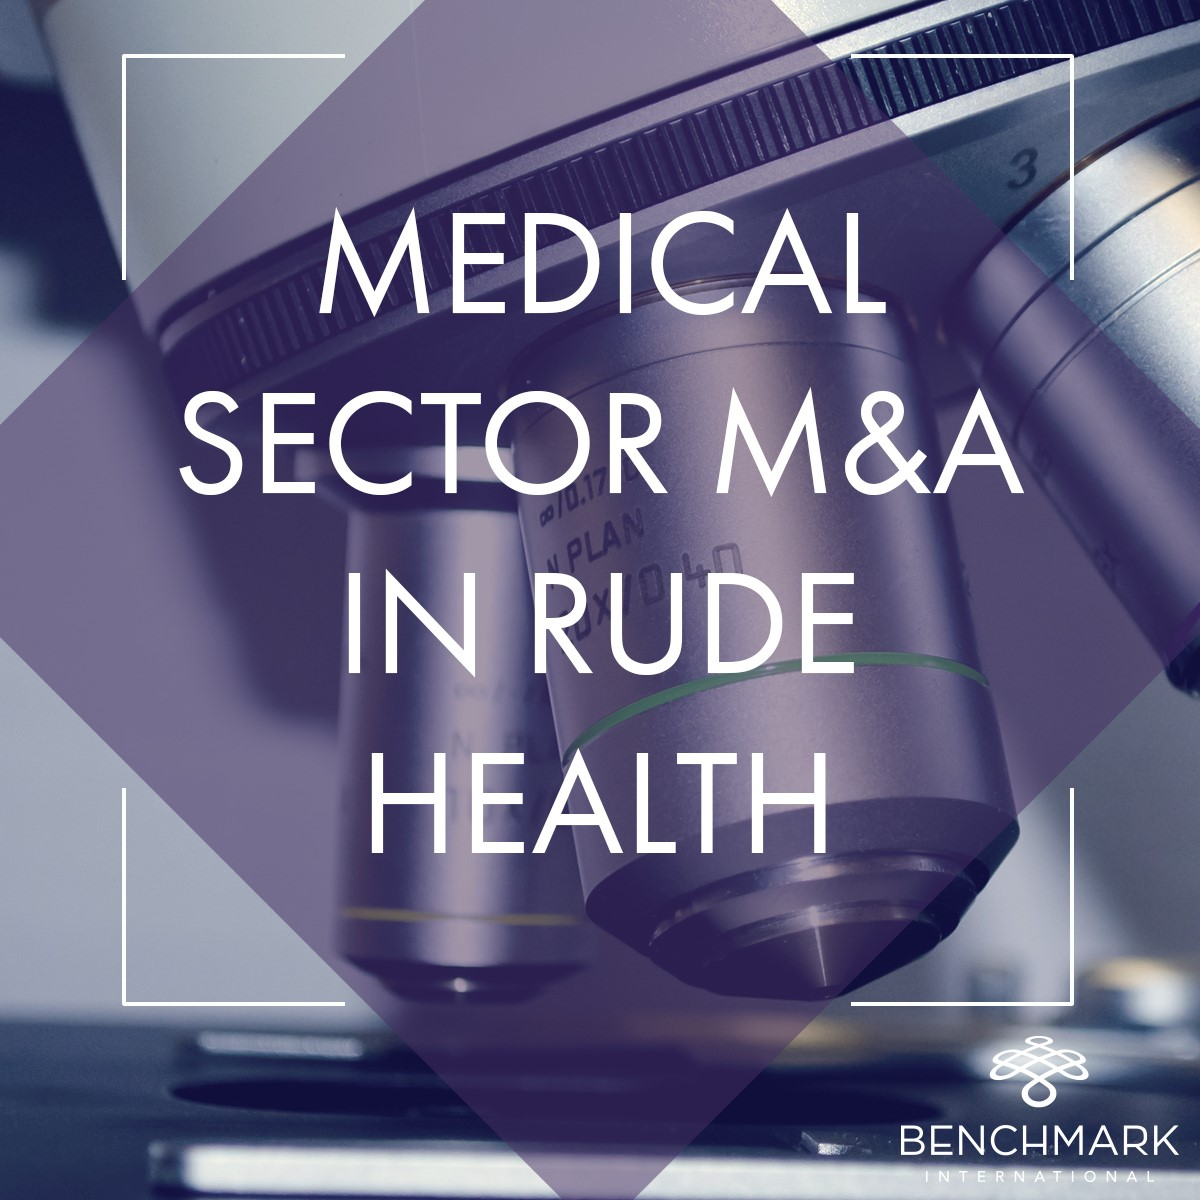 Medical Sector M&A Bottom Image